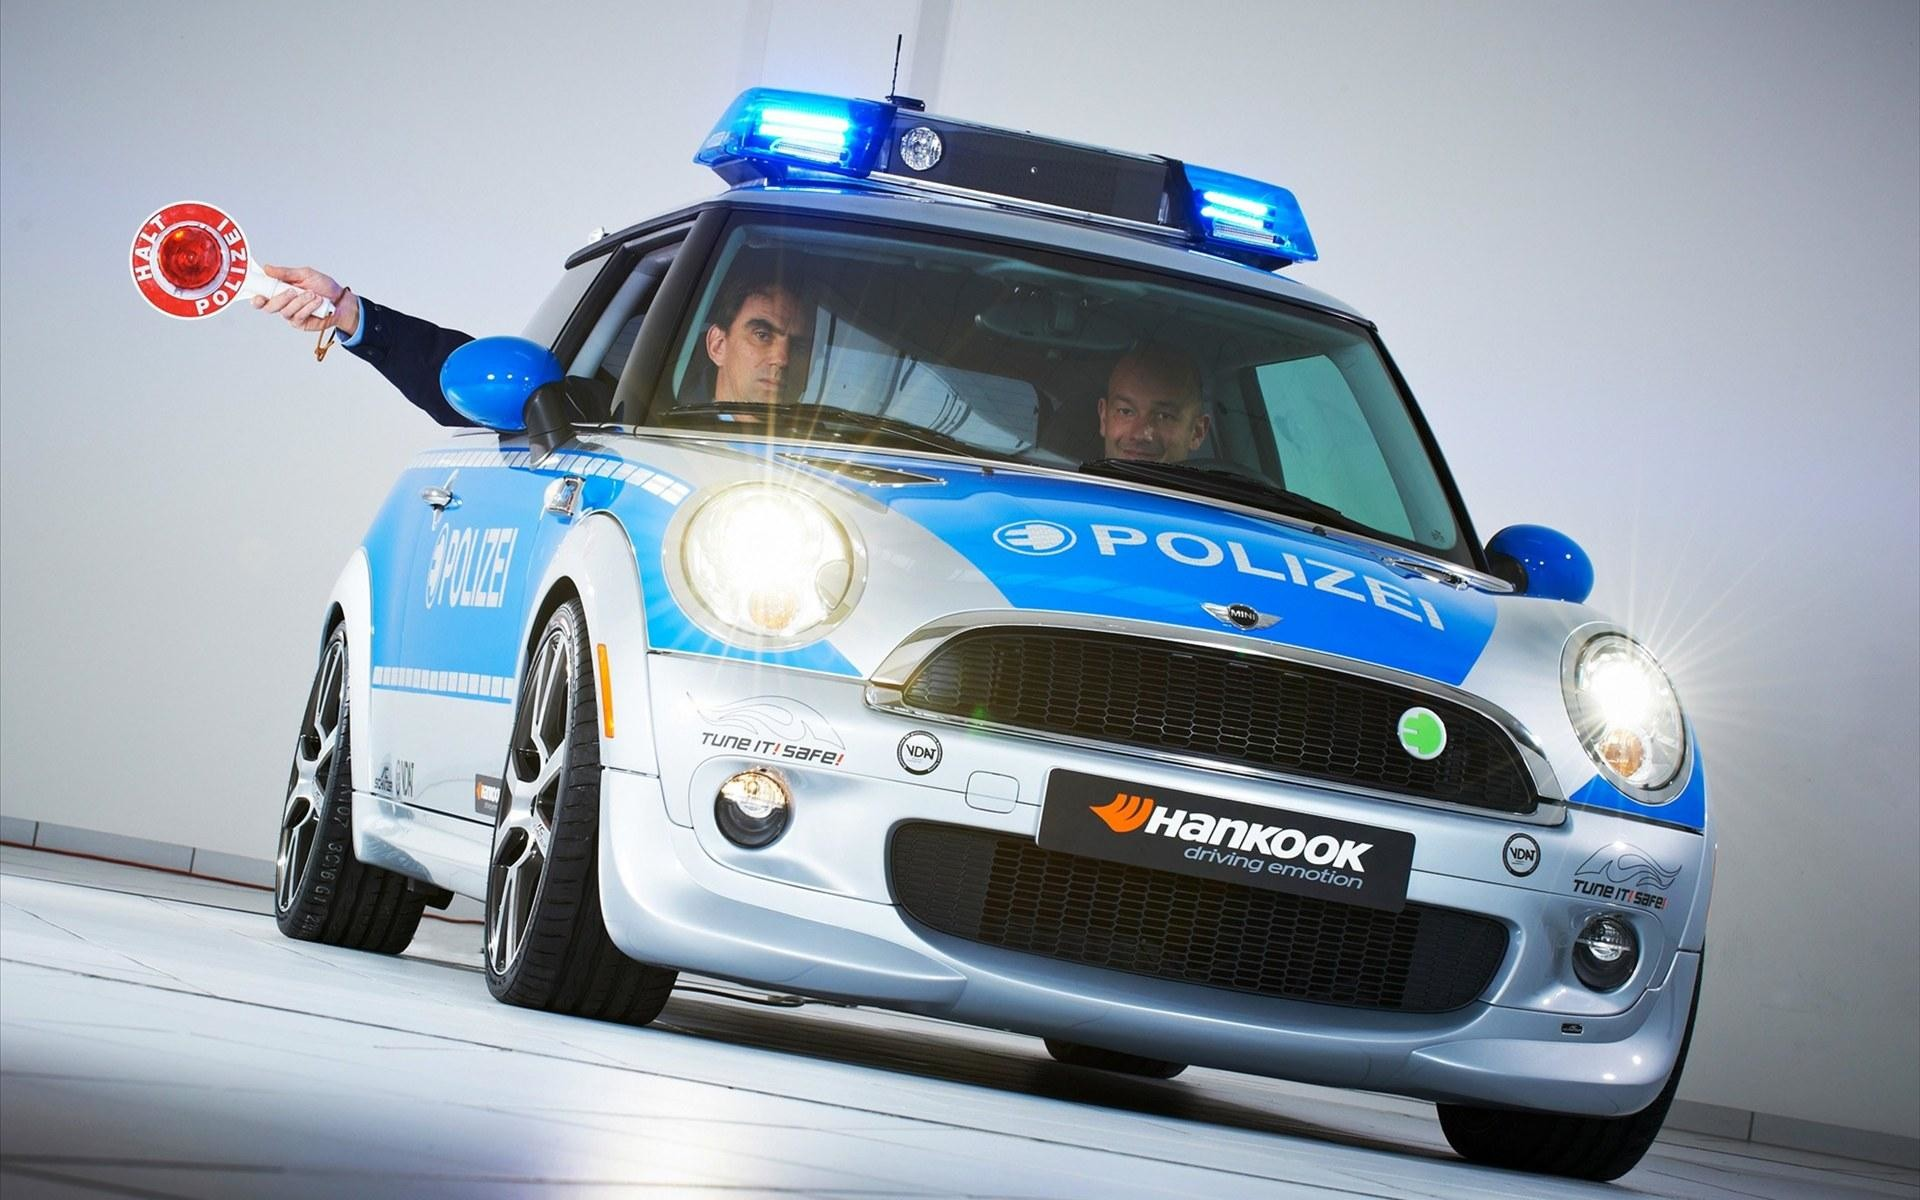 Police Car wallpapers hd